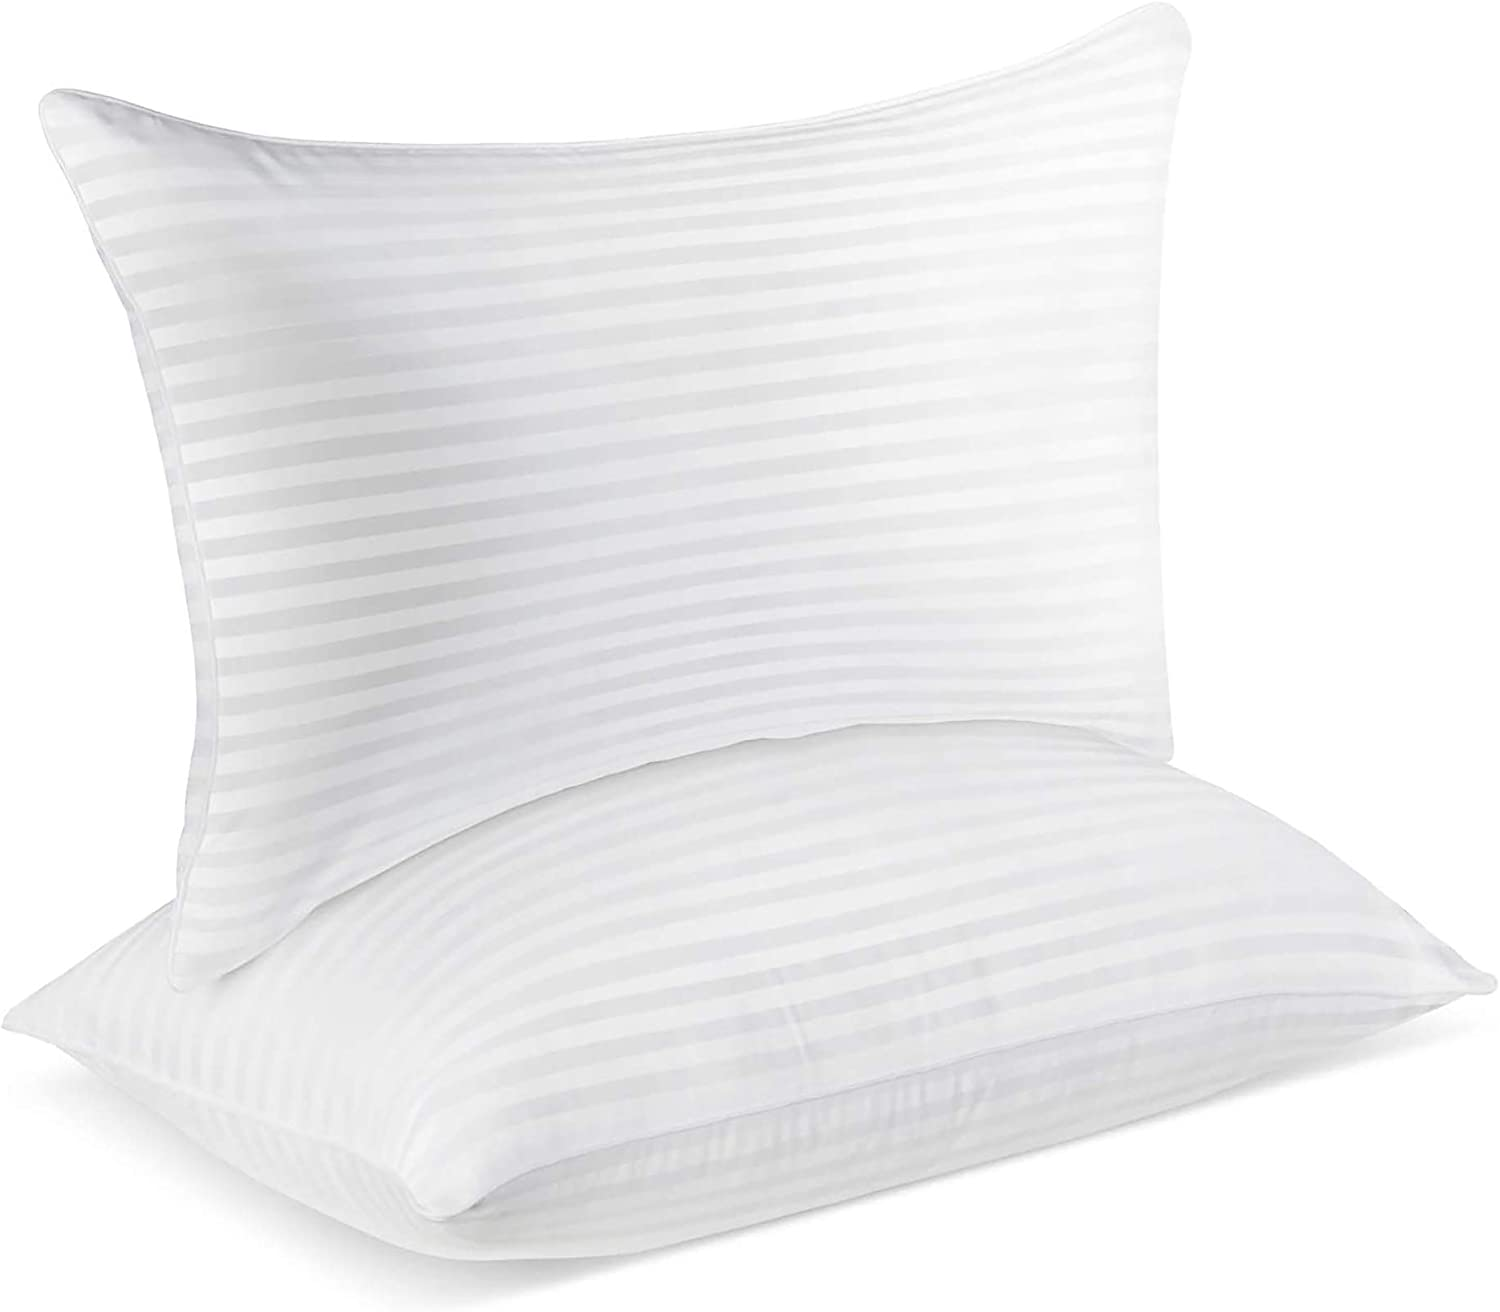 SUMITU Hotel Pillows for Sleeping 2 Pack Standard Size 20 x 26 Inches, Hypoallergenic Pillow for Side and Back Sleeper, Soft Bed Gel Pillows Set of 2, Down Alternative Cooling Pillow: Home & Kitchen